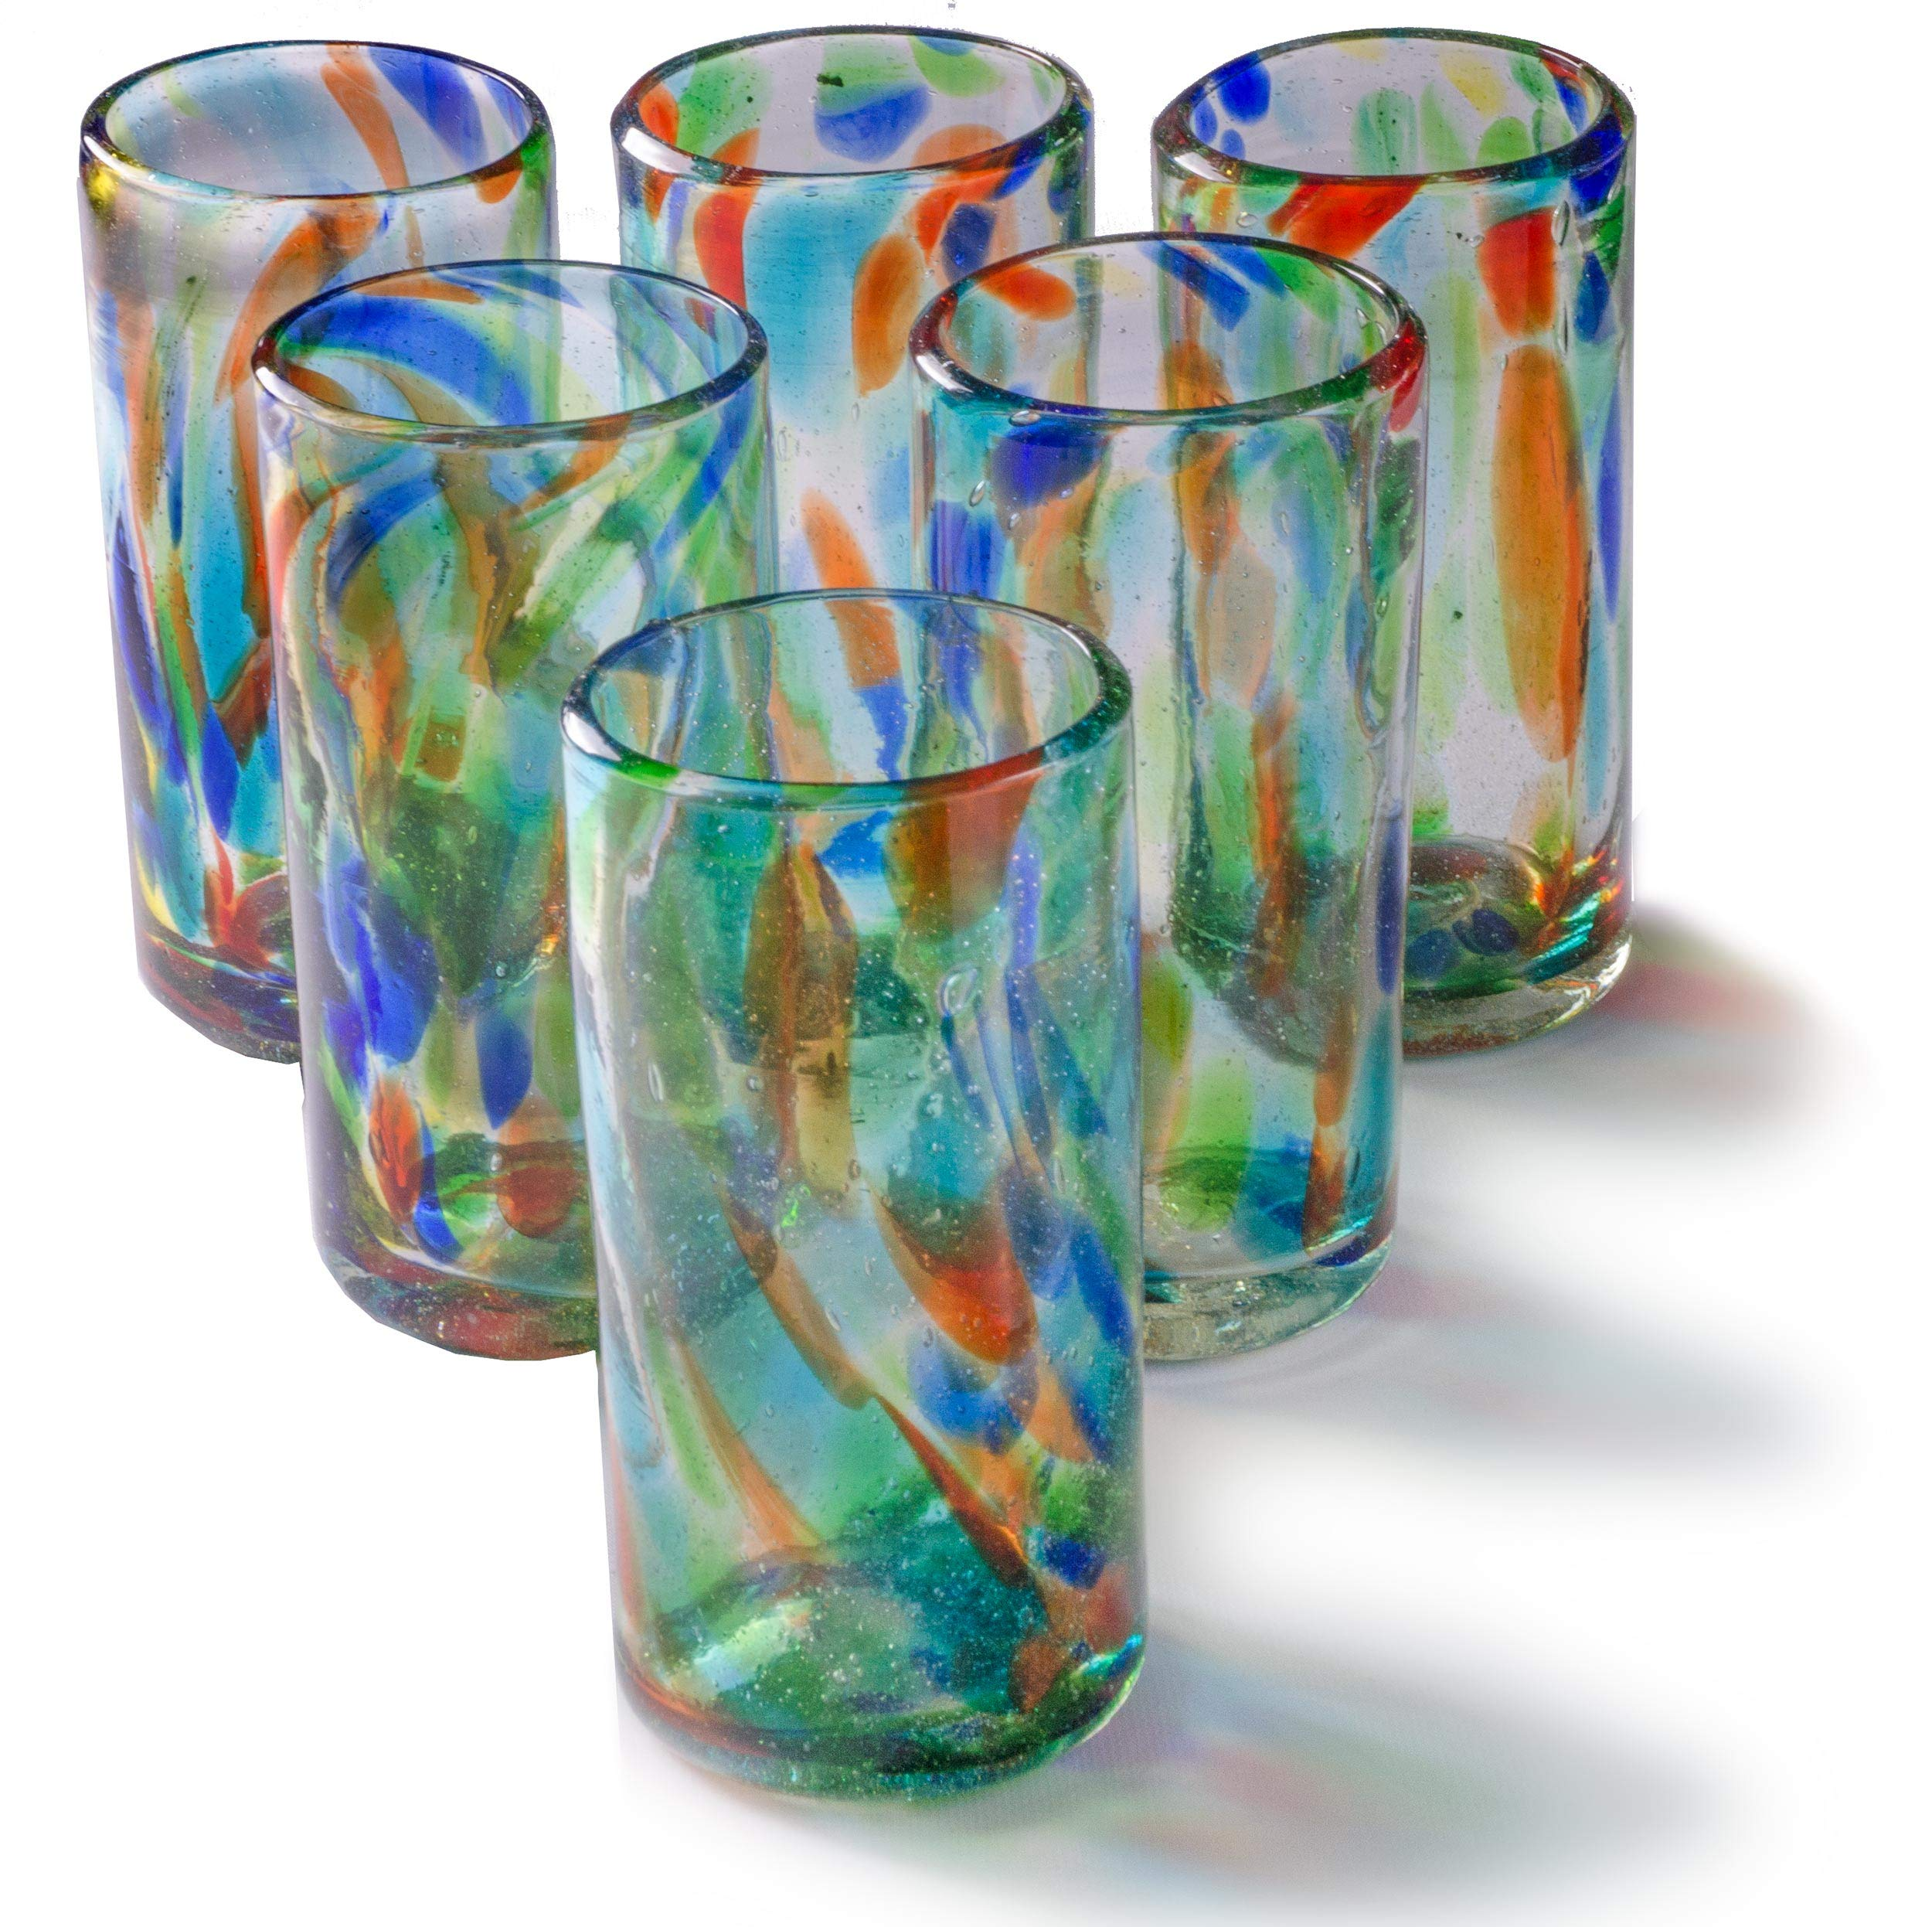 Orion Solid Confetti 22 oz Tall Tumbler - Set of 6